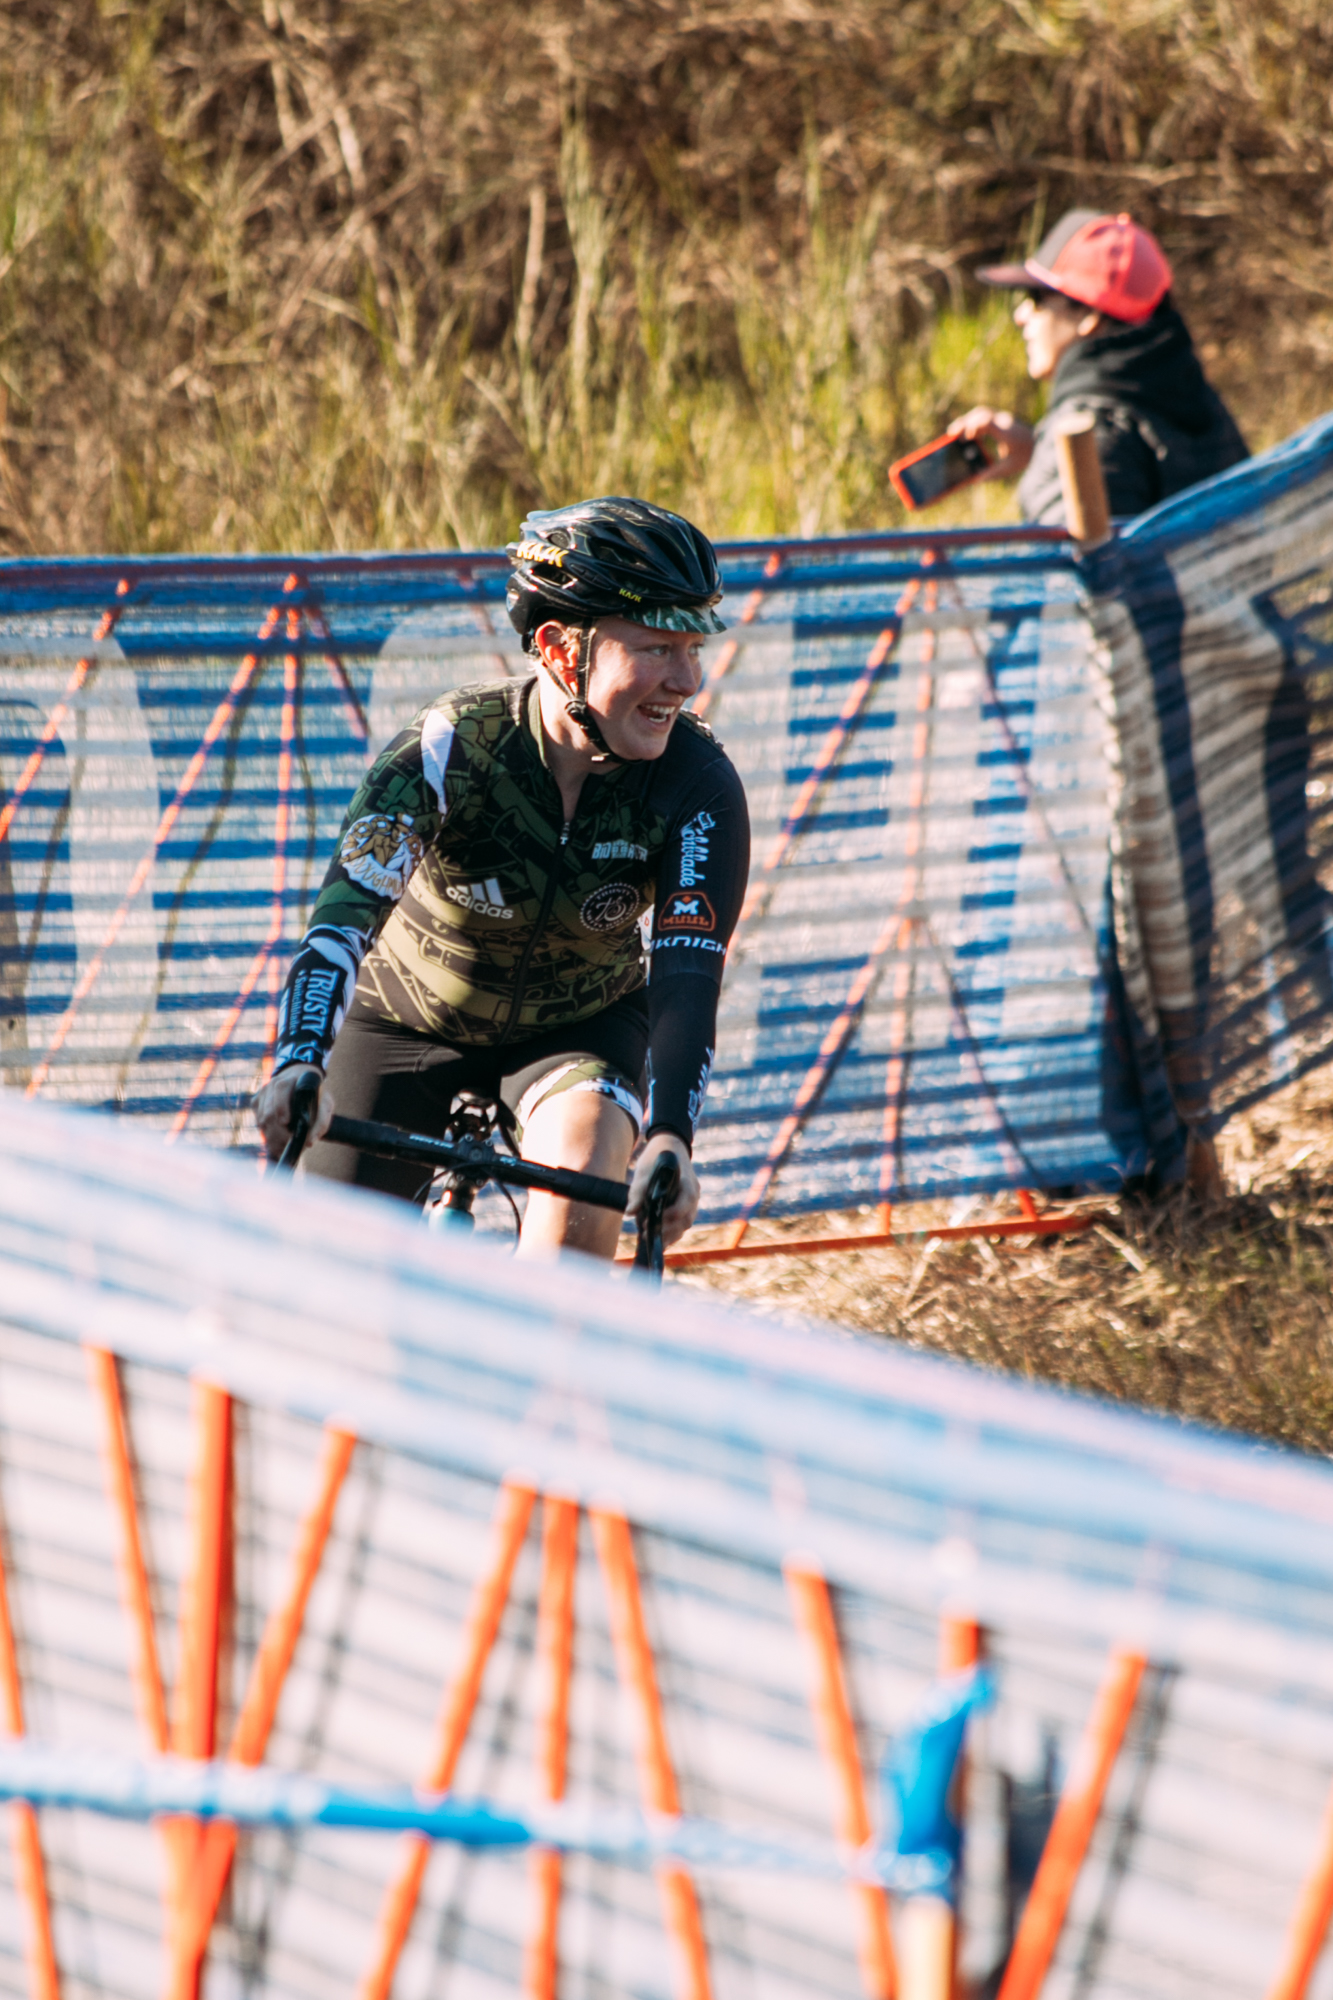 Cyclocross18_CCCX_BartonPark-mettlecycling43.jpg